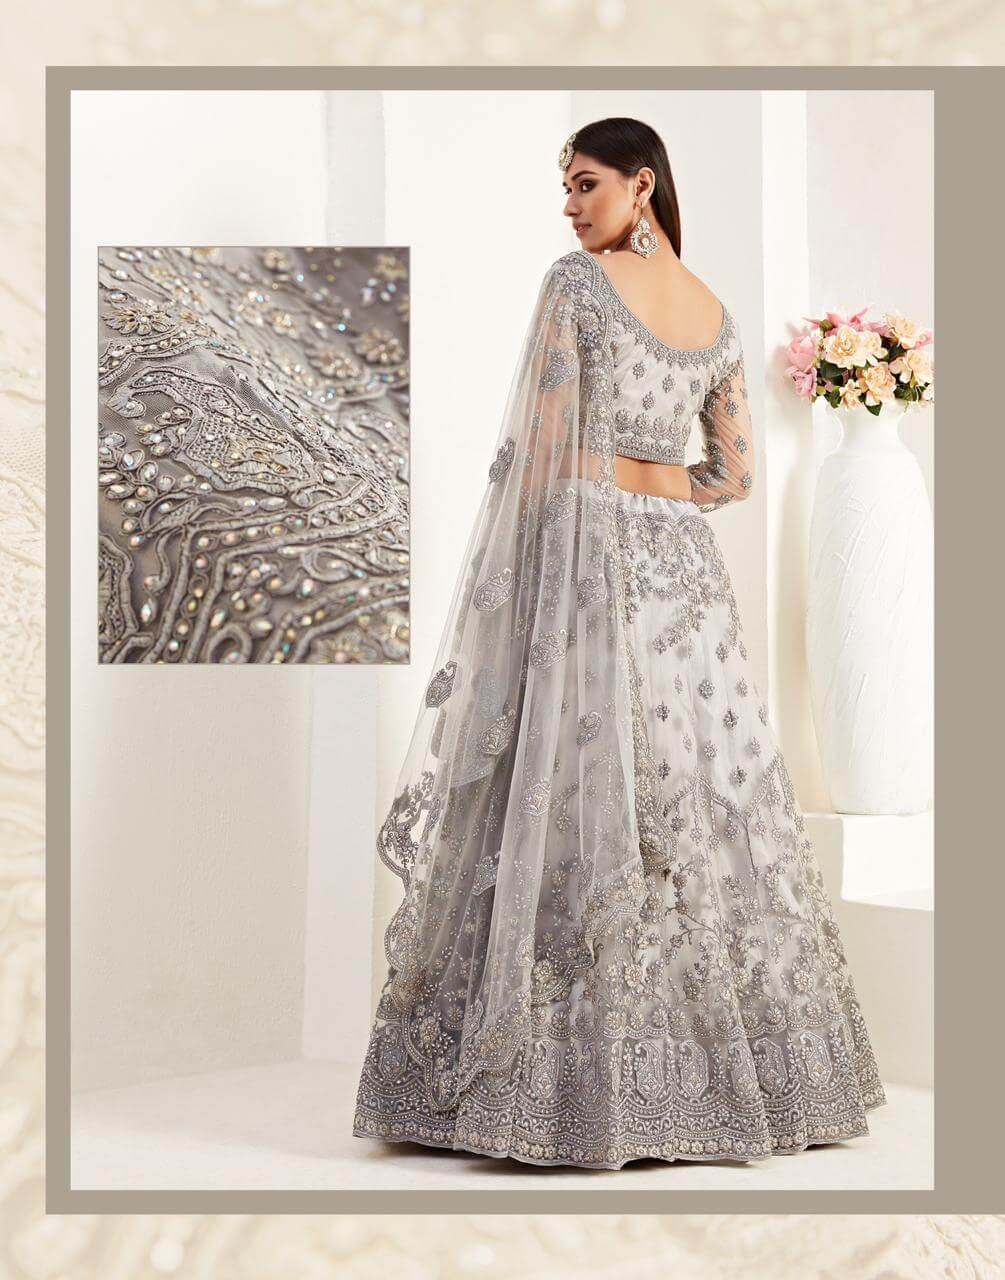 Alizeh Bridal Heritage Vol 2 collection 5